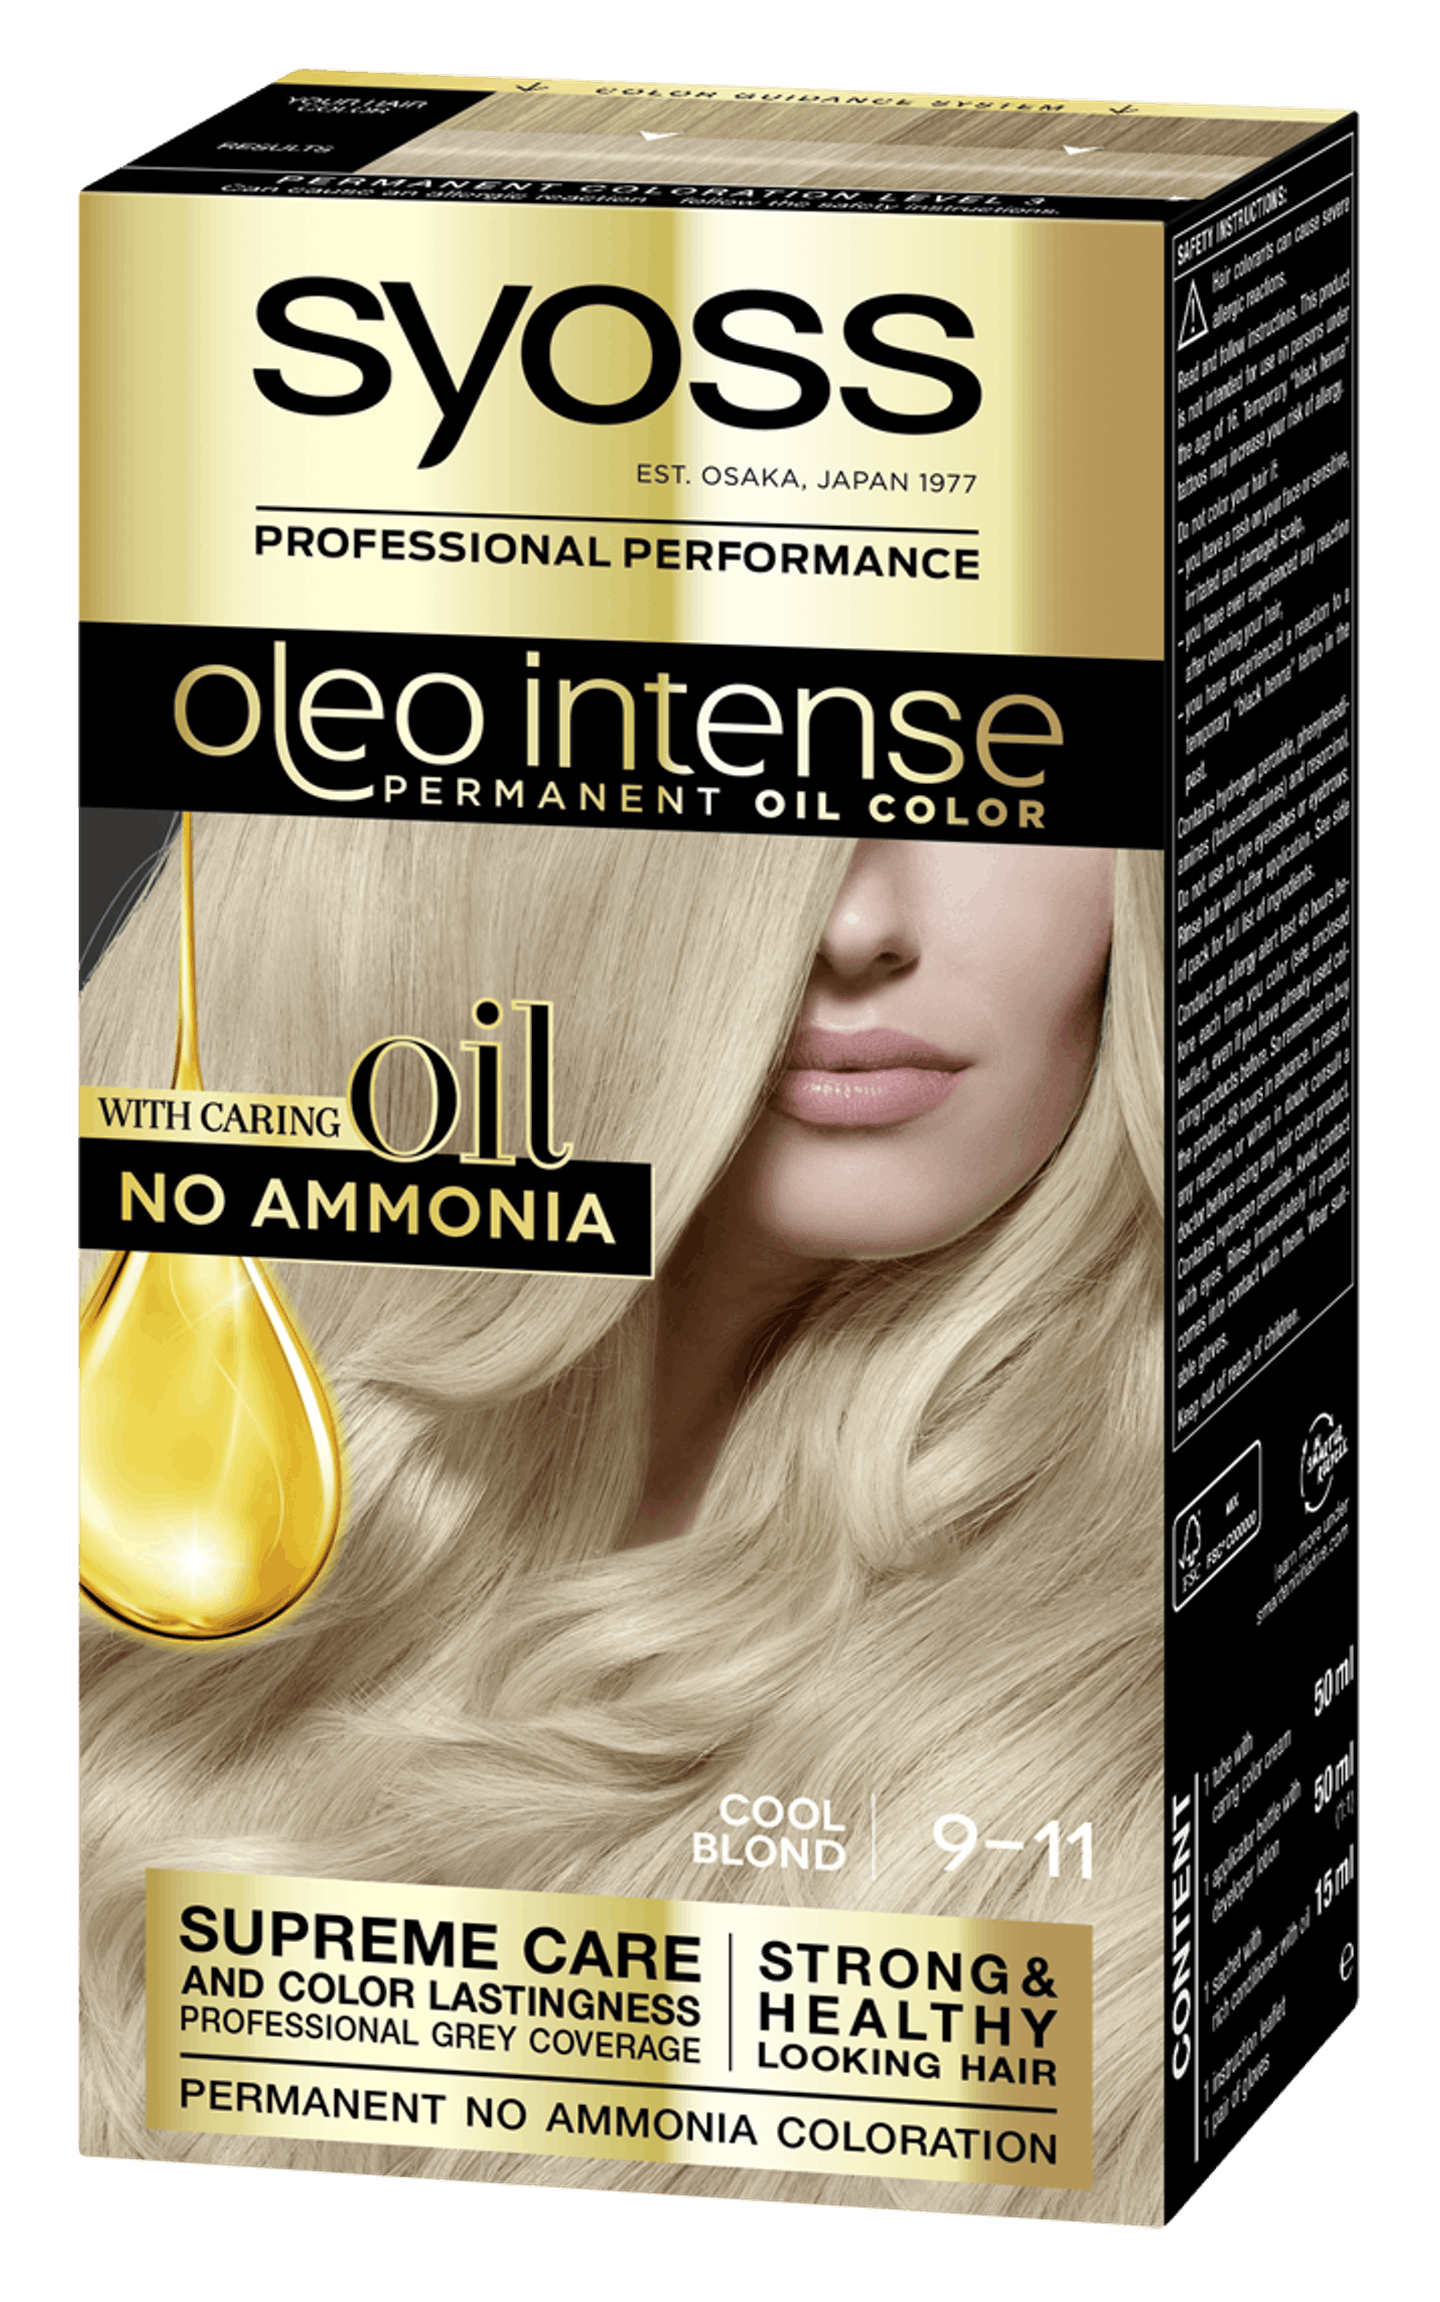 Syoss Oleo Intense Permanent Oil Color 9-11 Cool Blonde